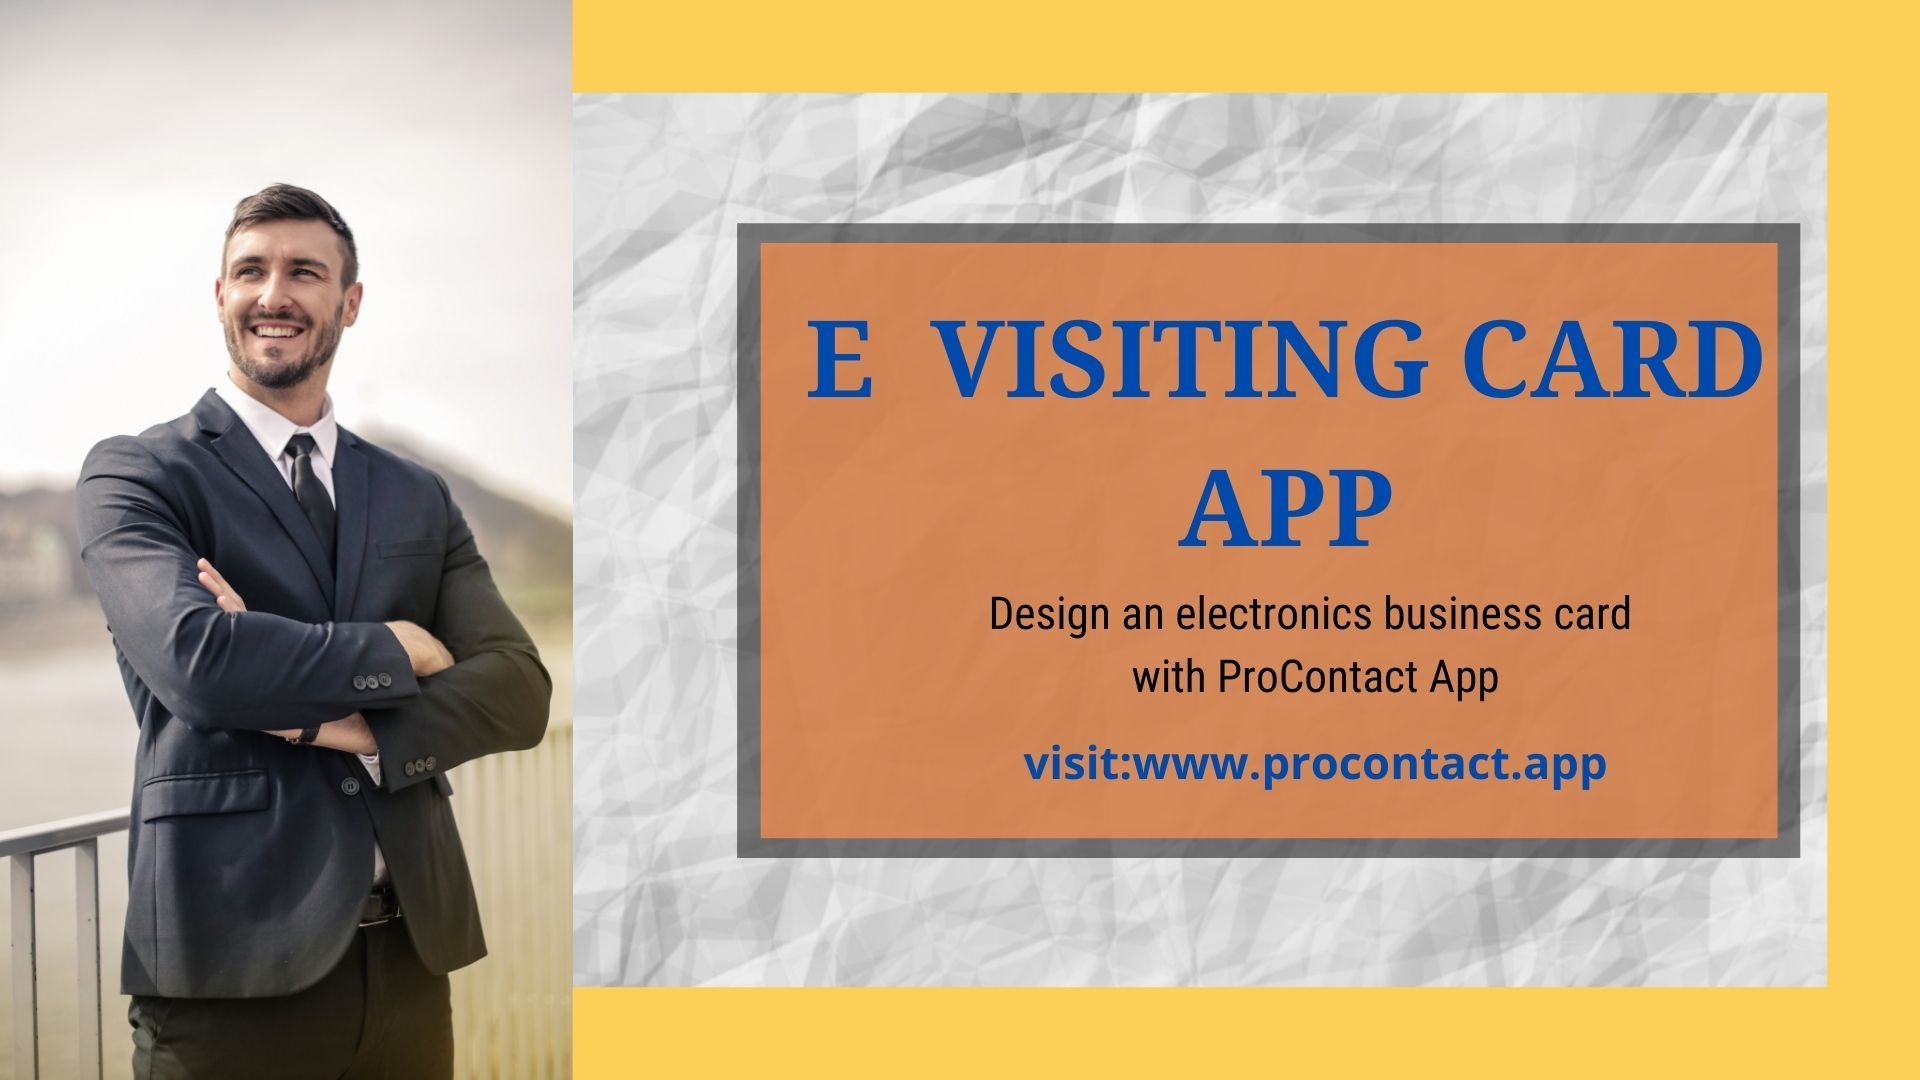 Design Your E Visiting Card With Procontact App Business Card App Digital Business Card Visiting Cards